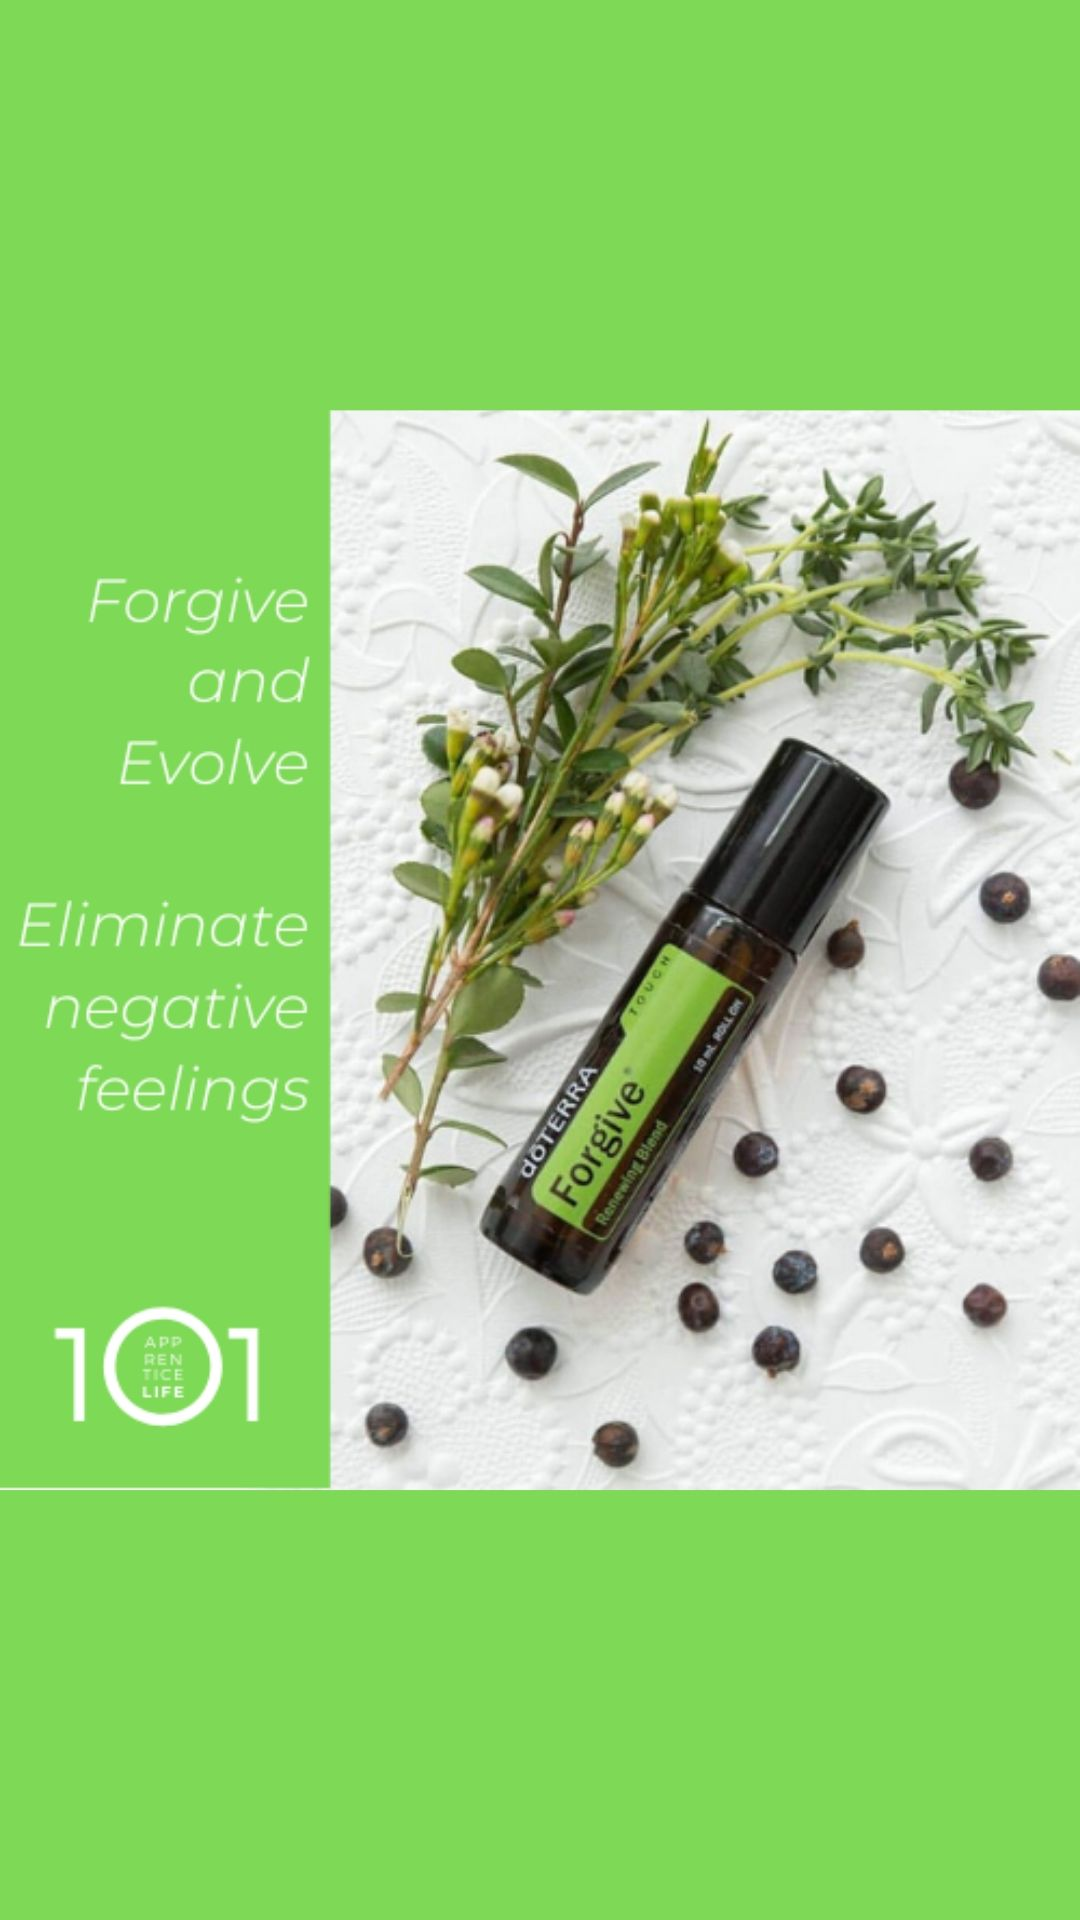 FORGIVE BLEND ESSENTIAL OILS Helping you to counteract emotions of anger and guilt